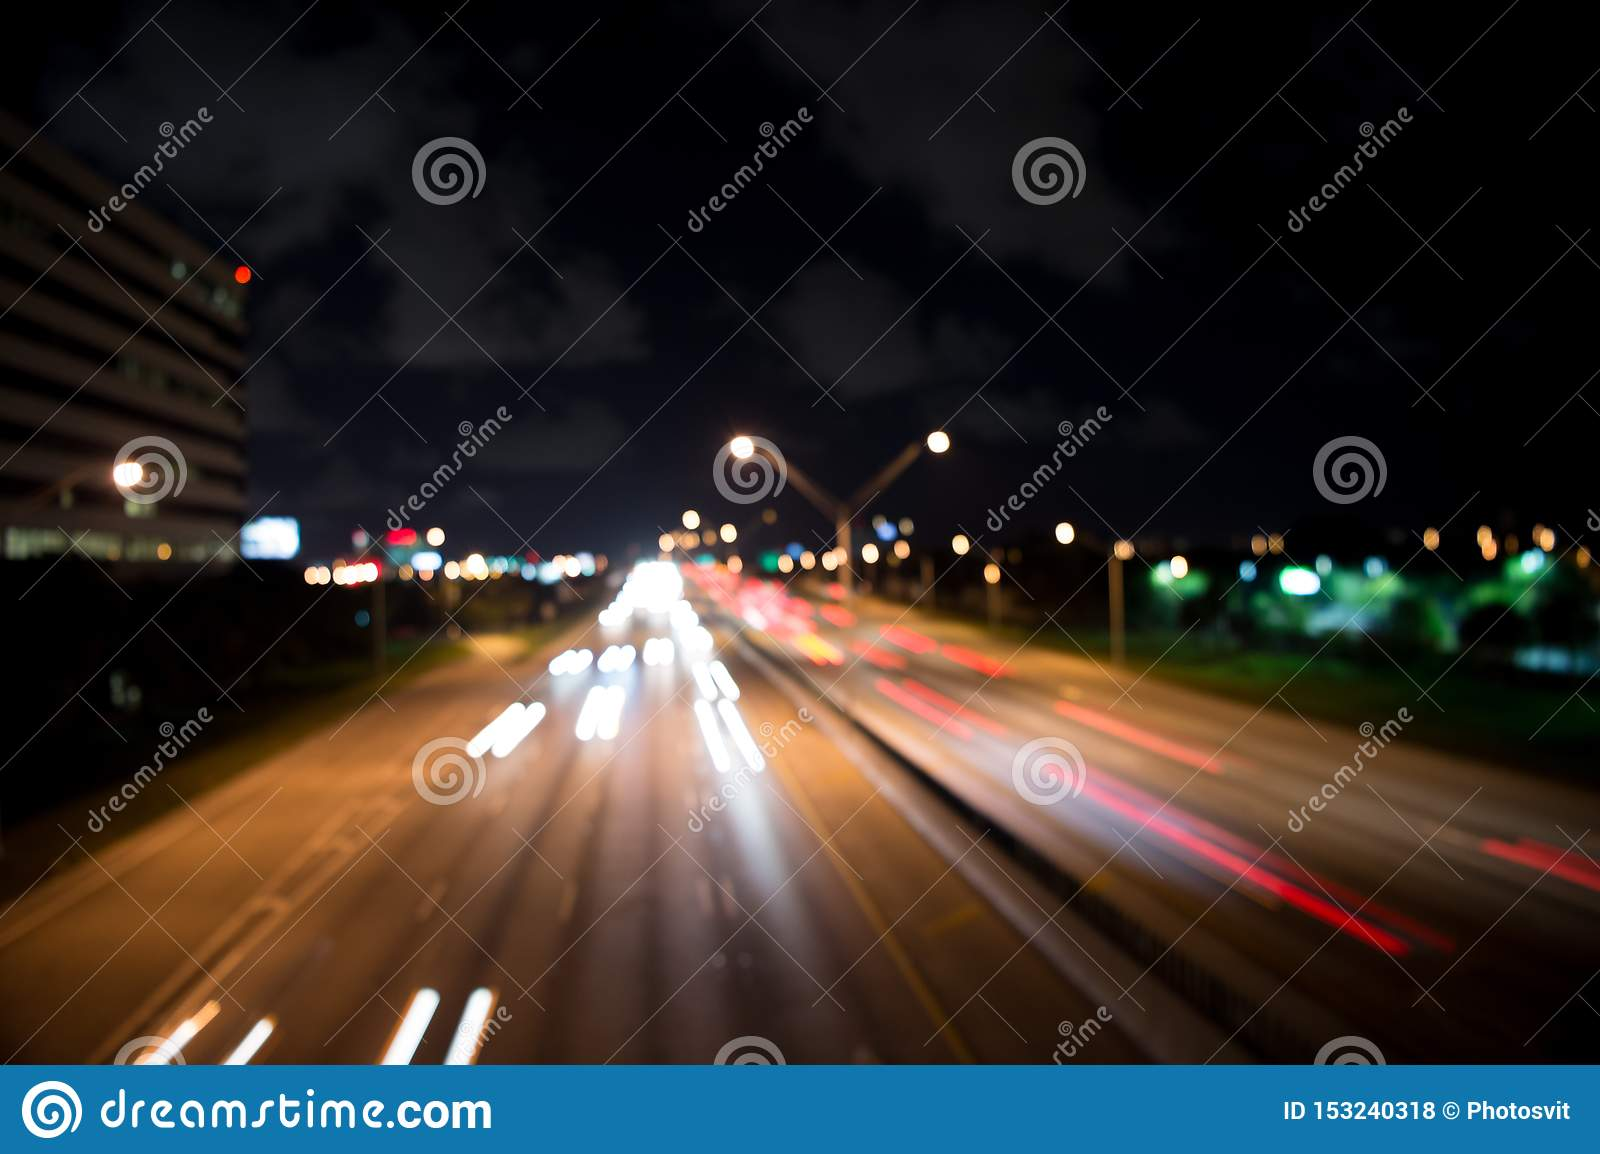 Blurred night city lights. defocused speed background. blur night life. illumination. Abstract urban night light